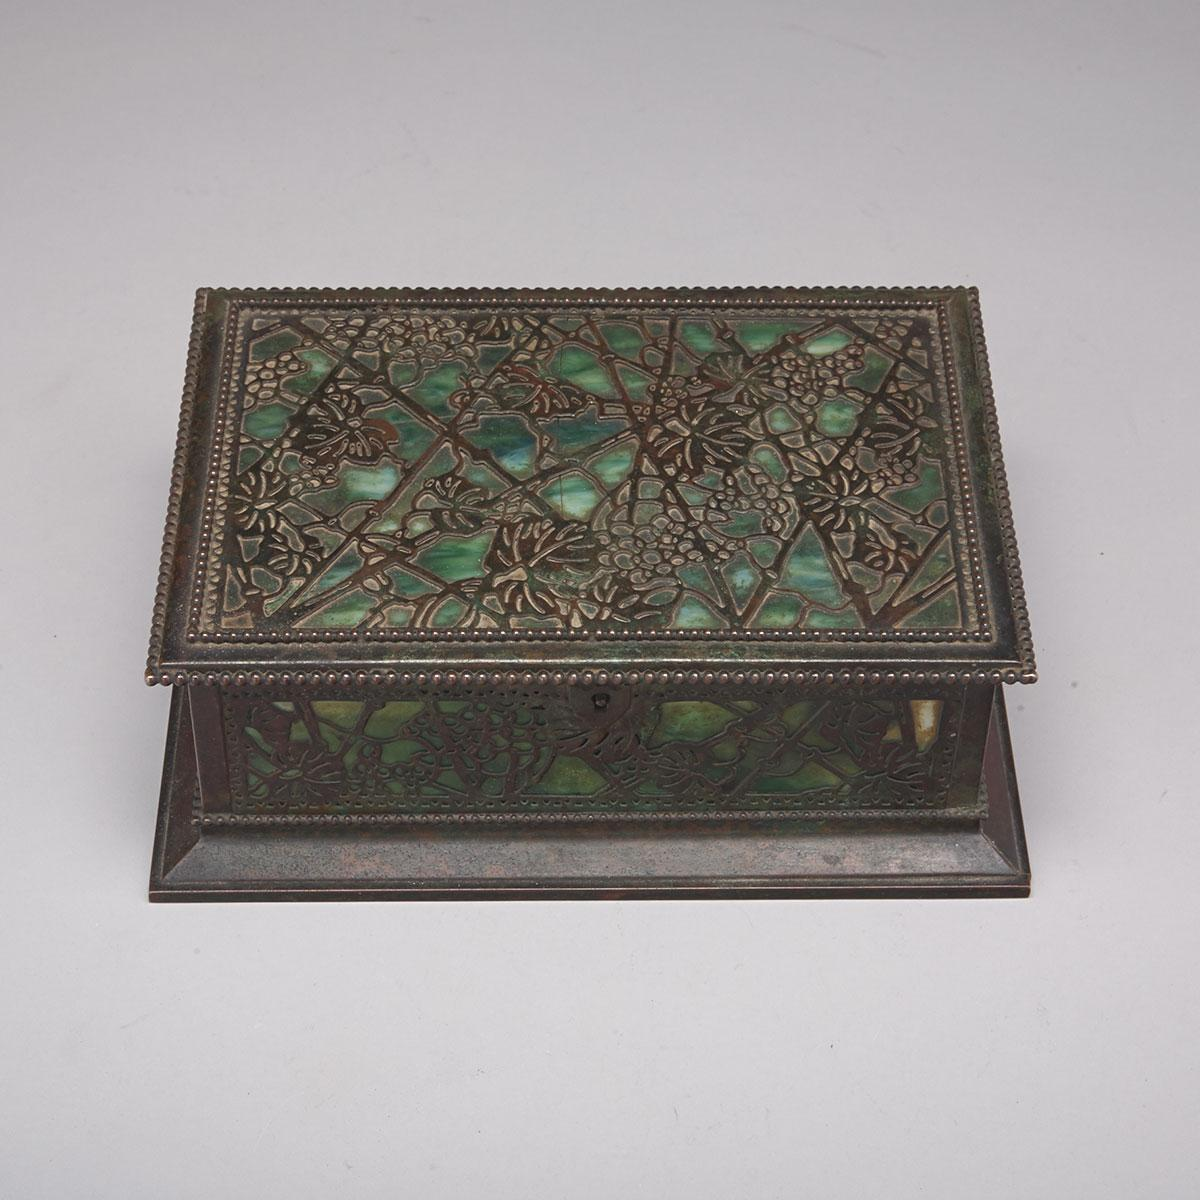 Tiffany Studios, New York, Etched Metal and Glass Grapevine Pattern Humidor, c.1919